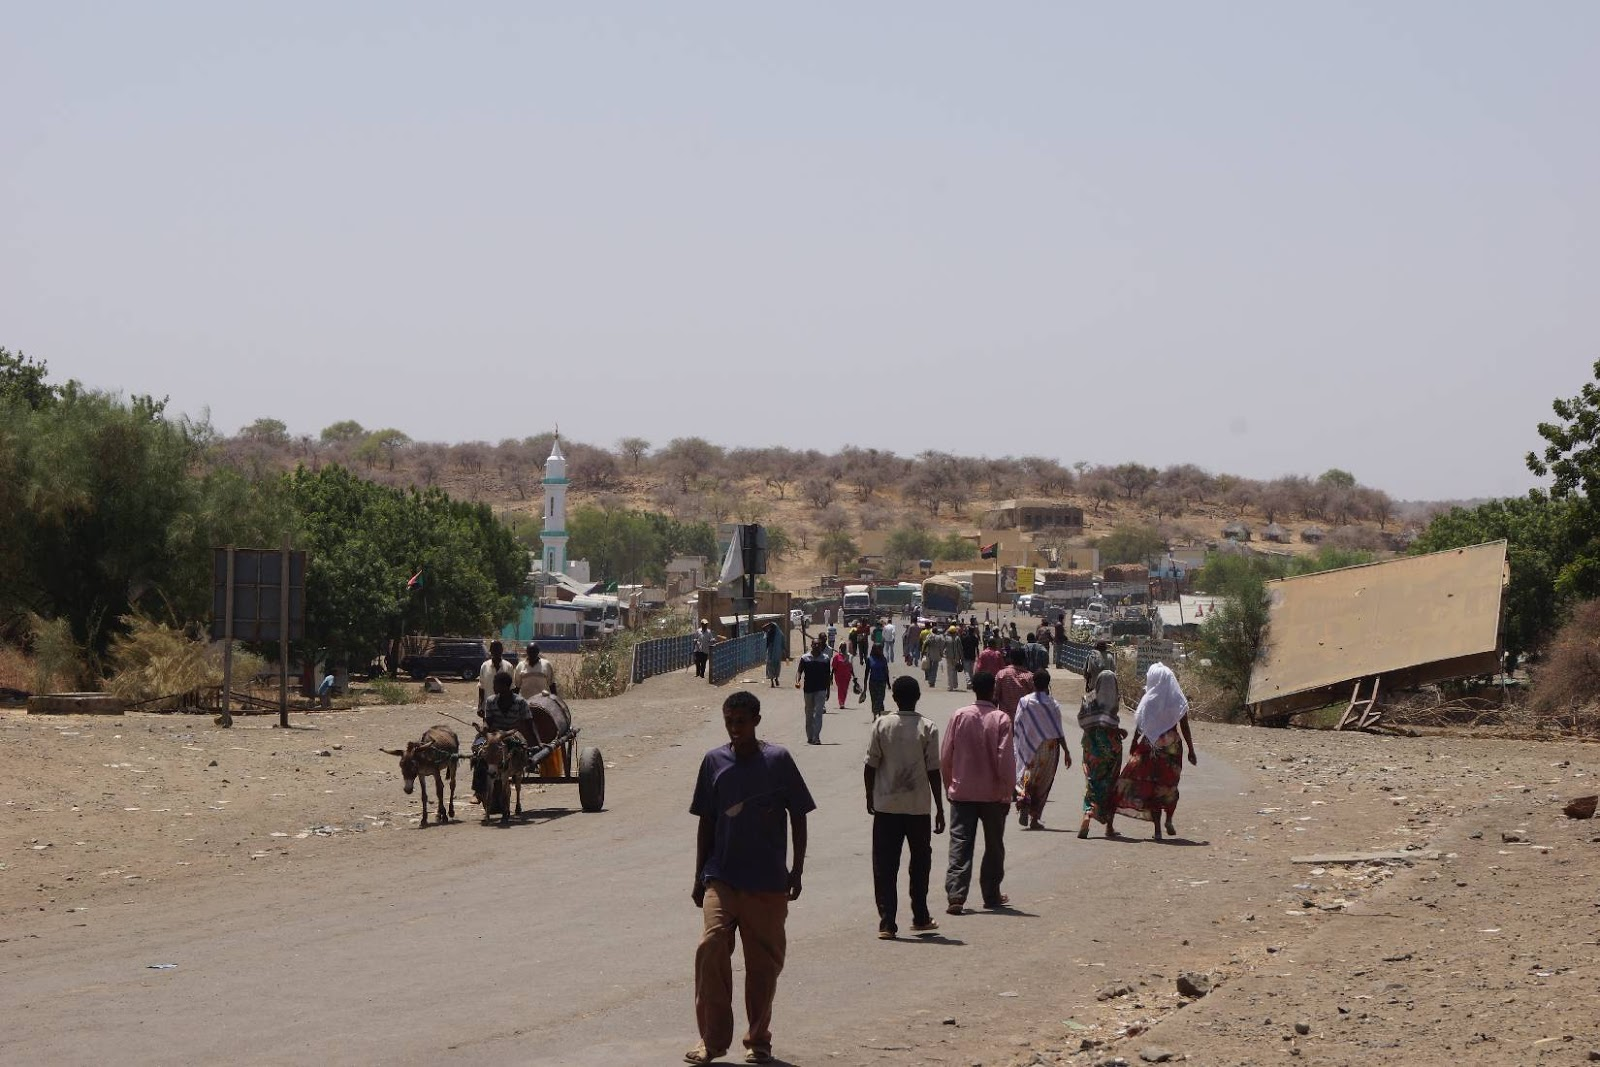 15 Ethiopian nationals held captive by human traffickers in Sudan freed